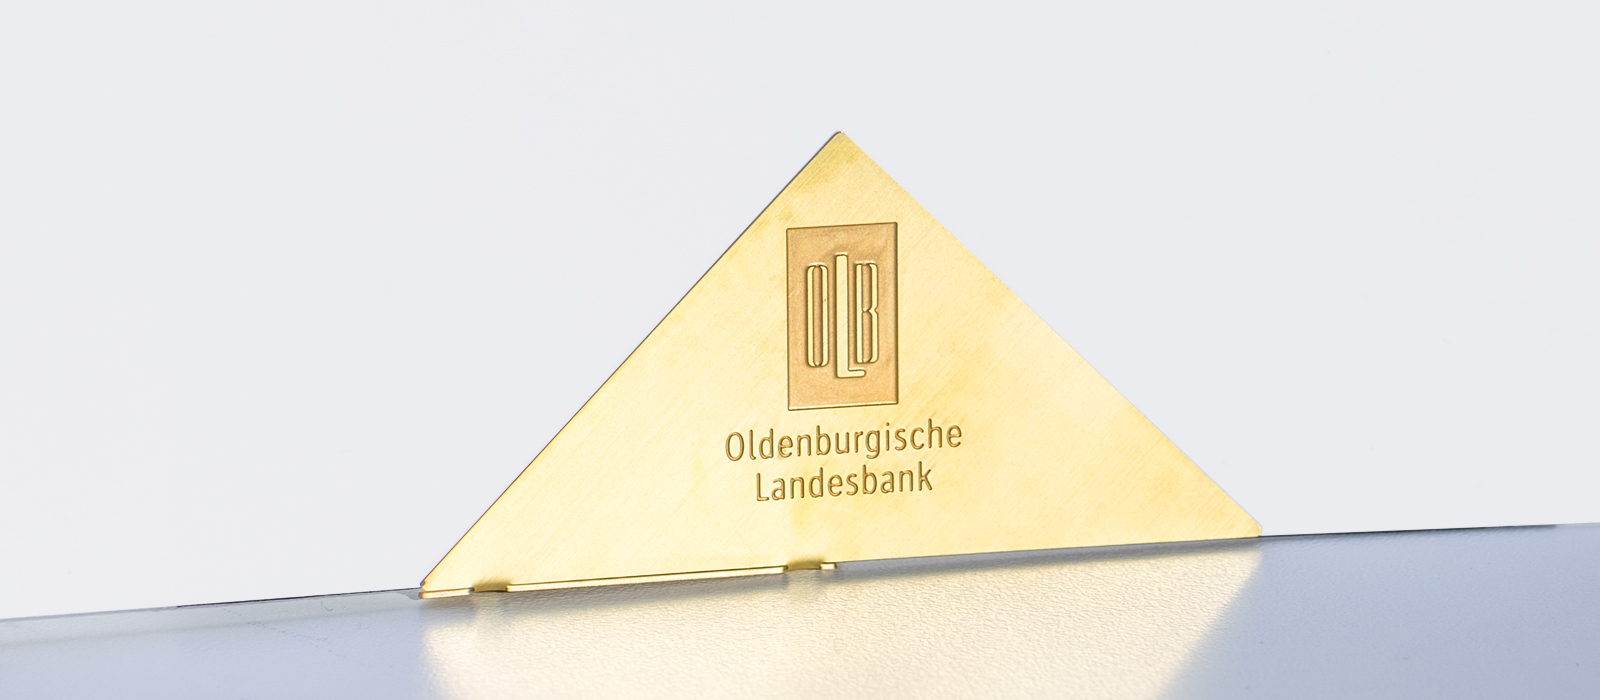 njustudio_hold_oldenburgischelandesbank_header